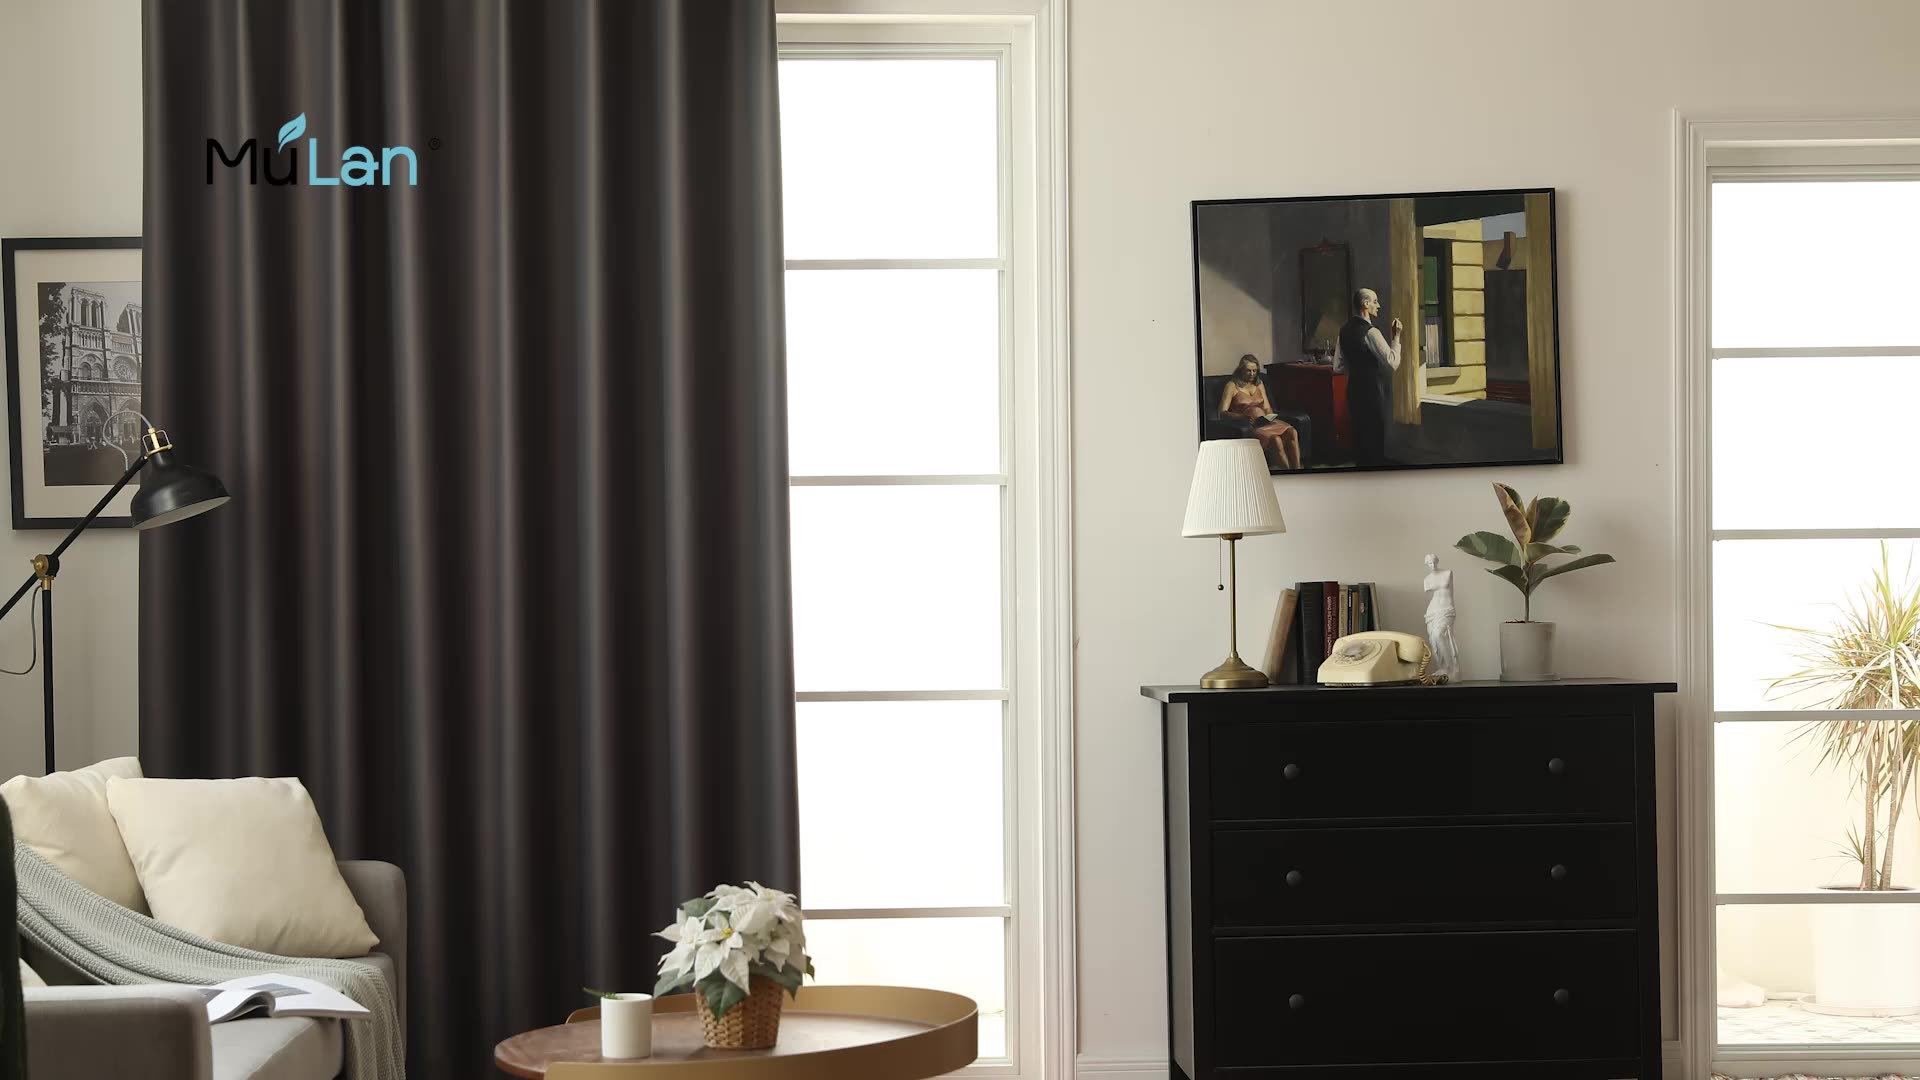 High Quality Cortinas 80% Blackout Curtains For The Living room Ready Made With Eyelet 54x96 inch, Accept custom